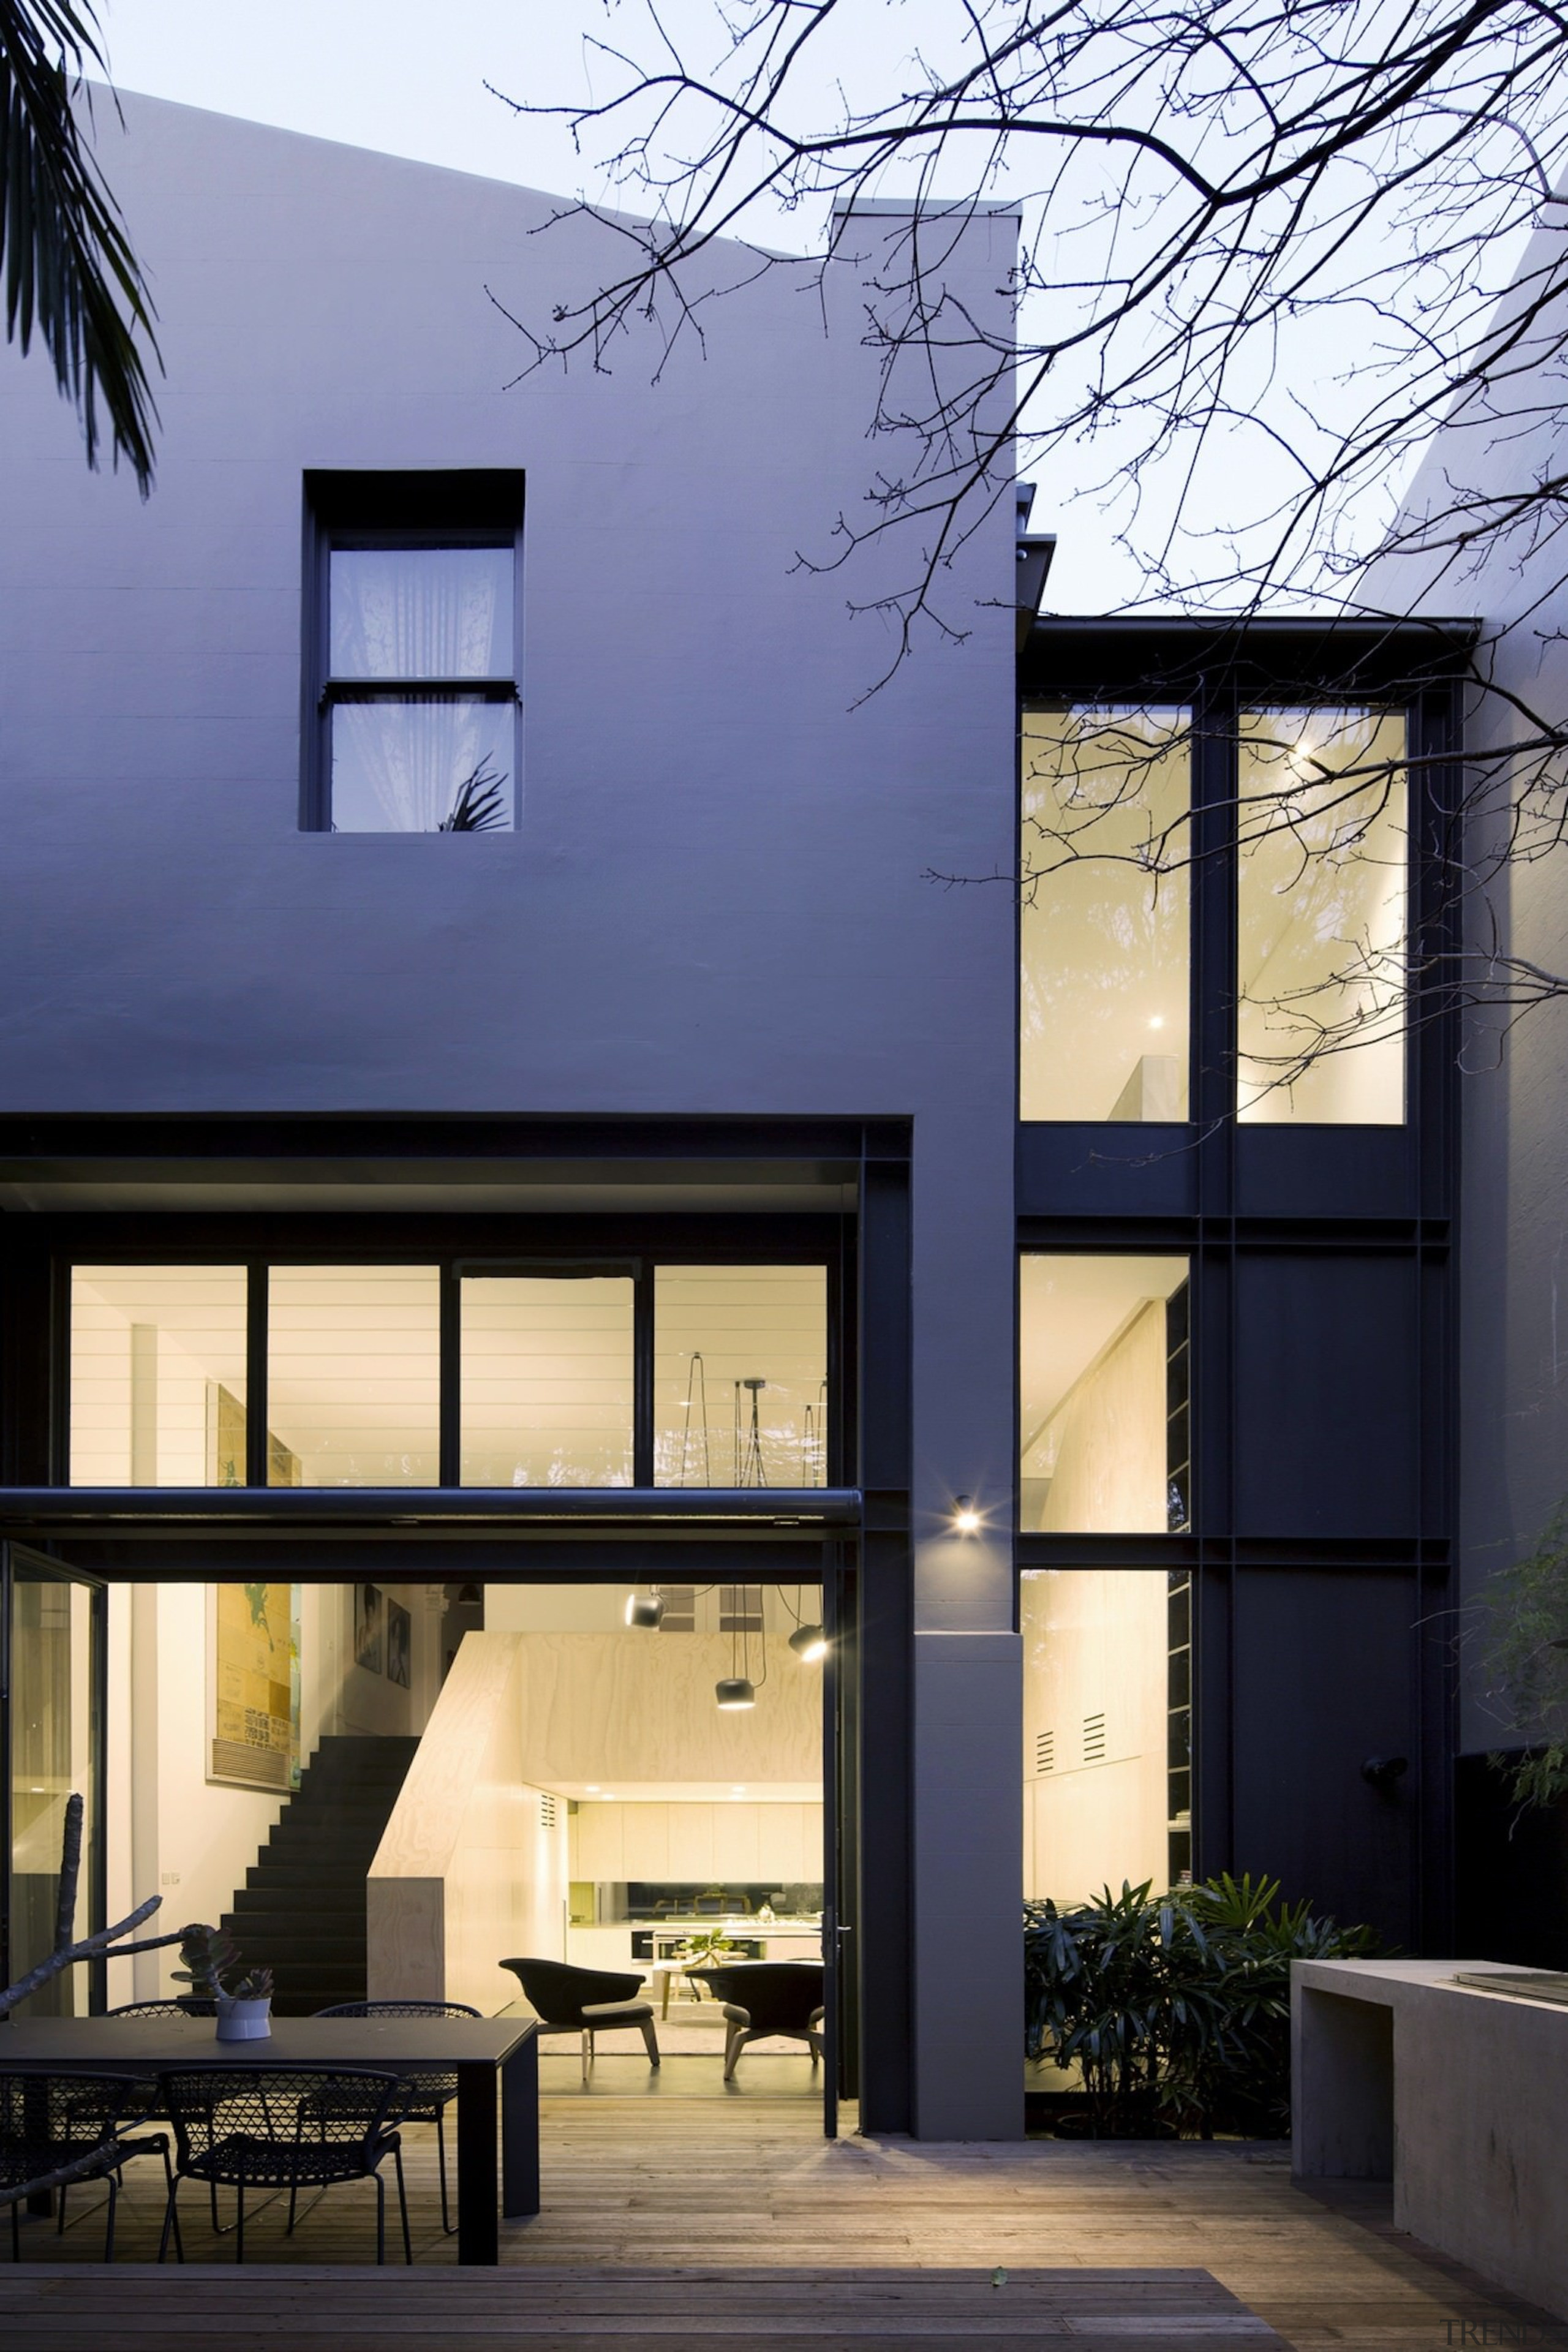 Architect: Architect PrineasPhotography by Chris Warnes architecture, building, daylighting, facade, home, house, interior design, real estate, residential area, window, black